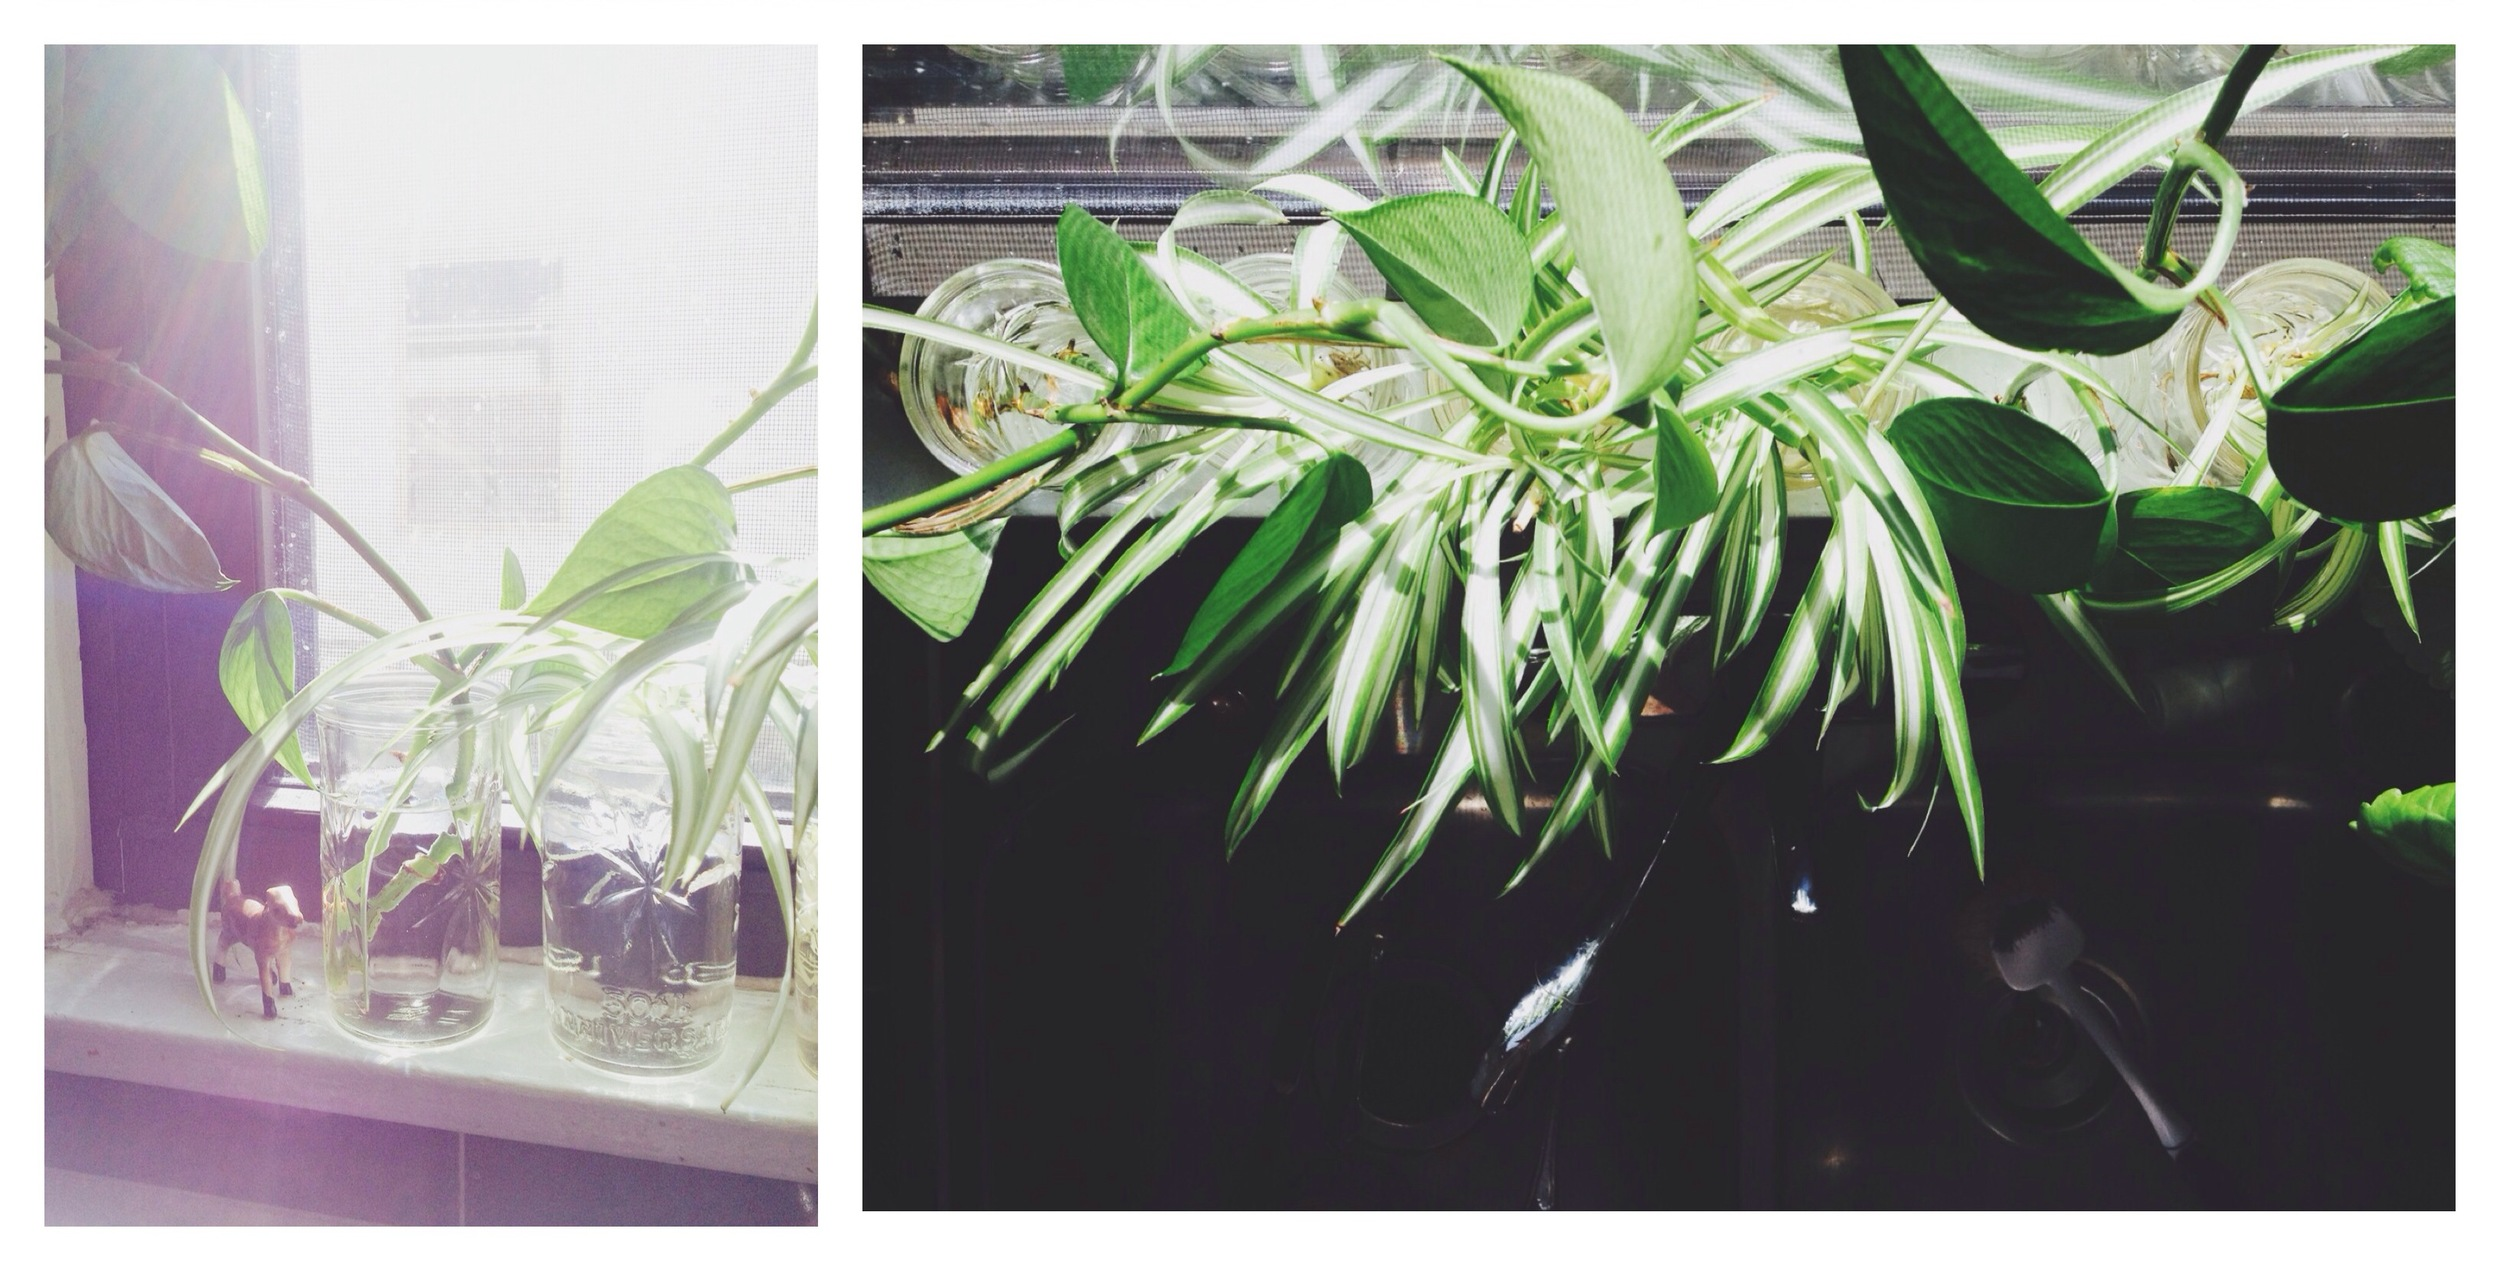 plant-clippings-rooting.jpg